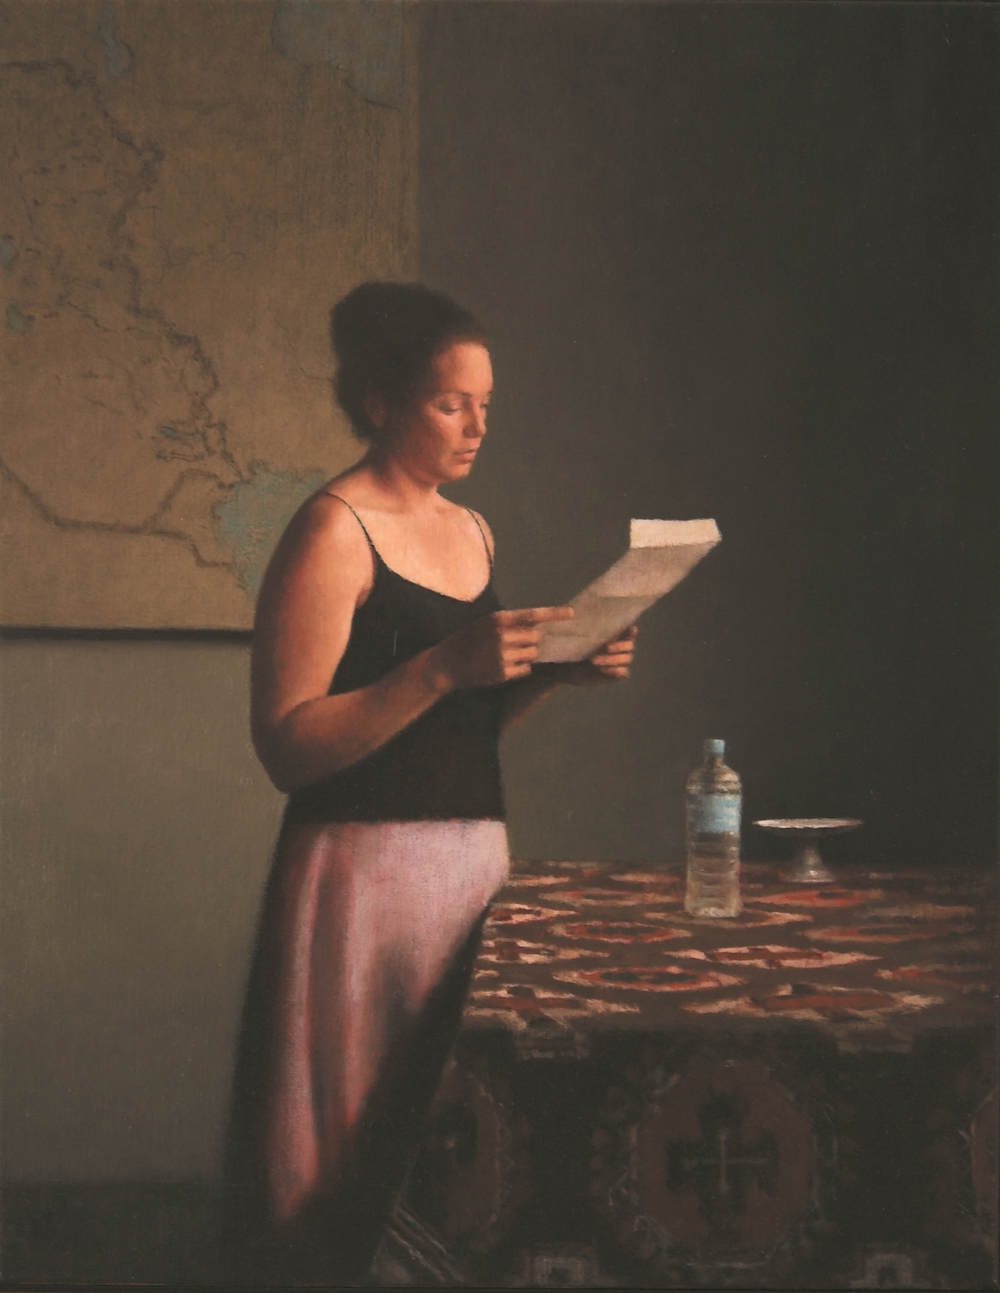 Interior 170 (Figure at a window), 2005, oil on linen, 570mm x 720mm.